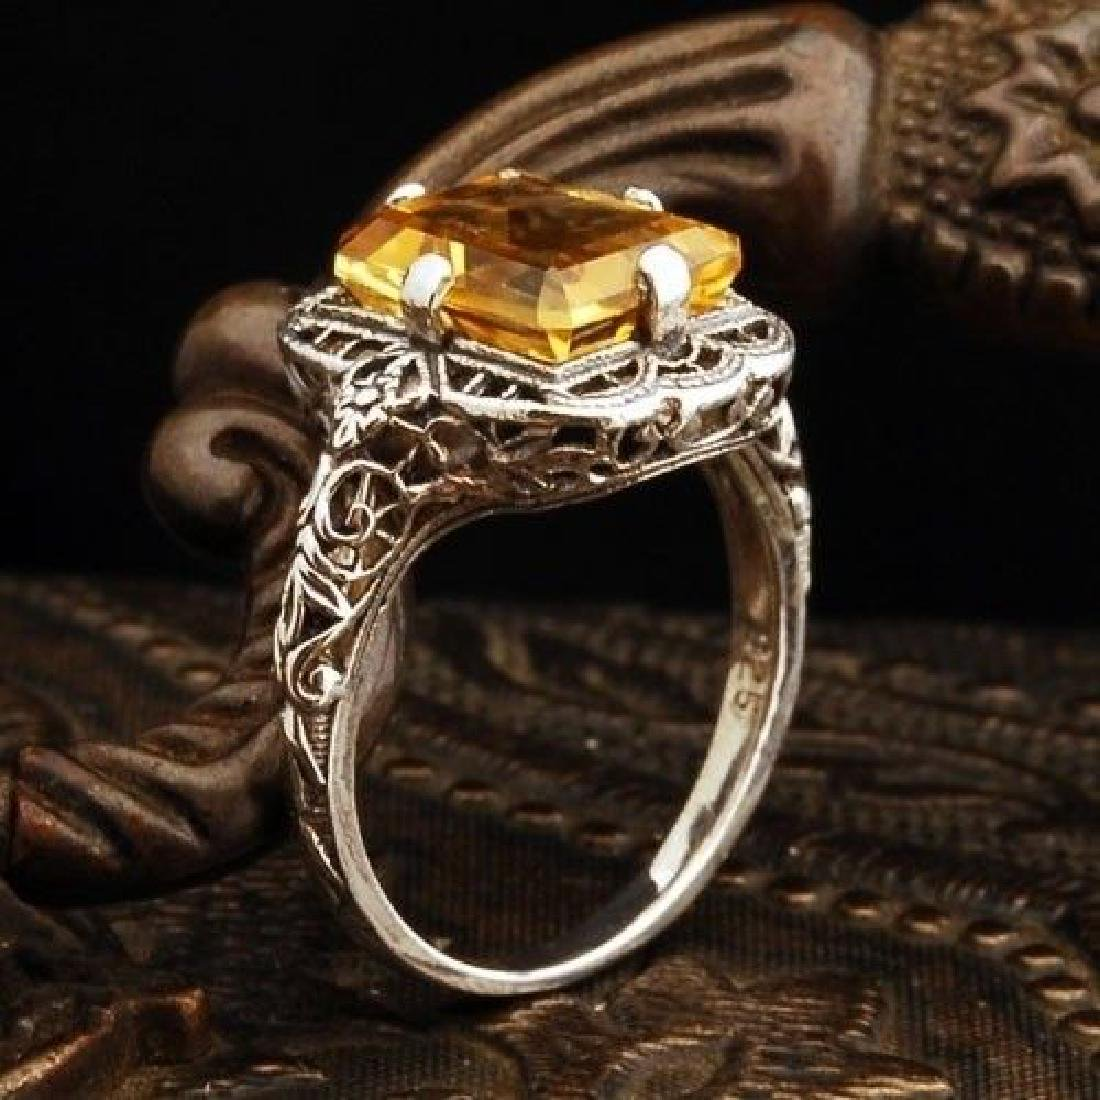 Yellow Topaz 1.9ct 925 Silver Ring Size 6 - 4